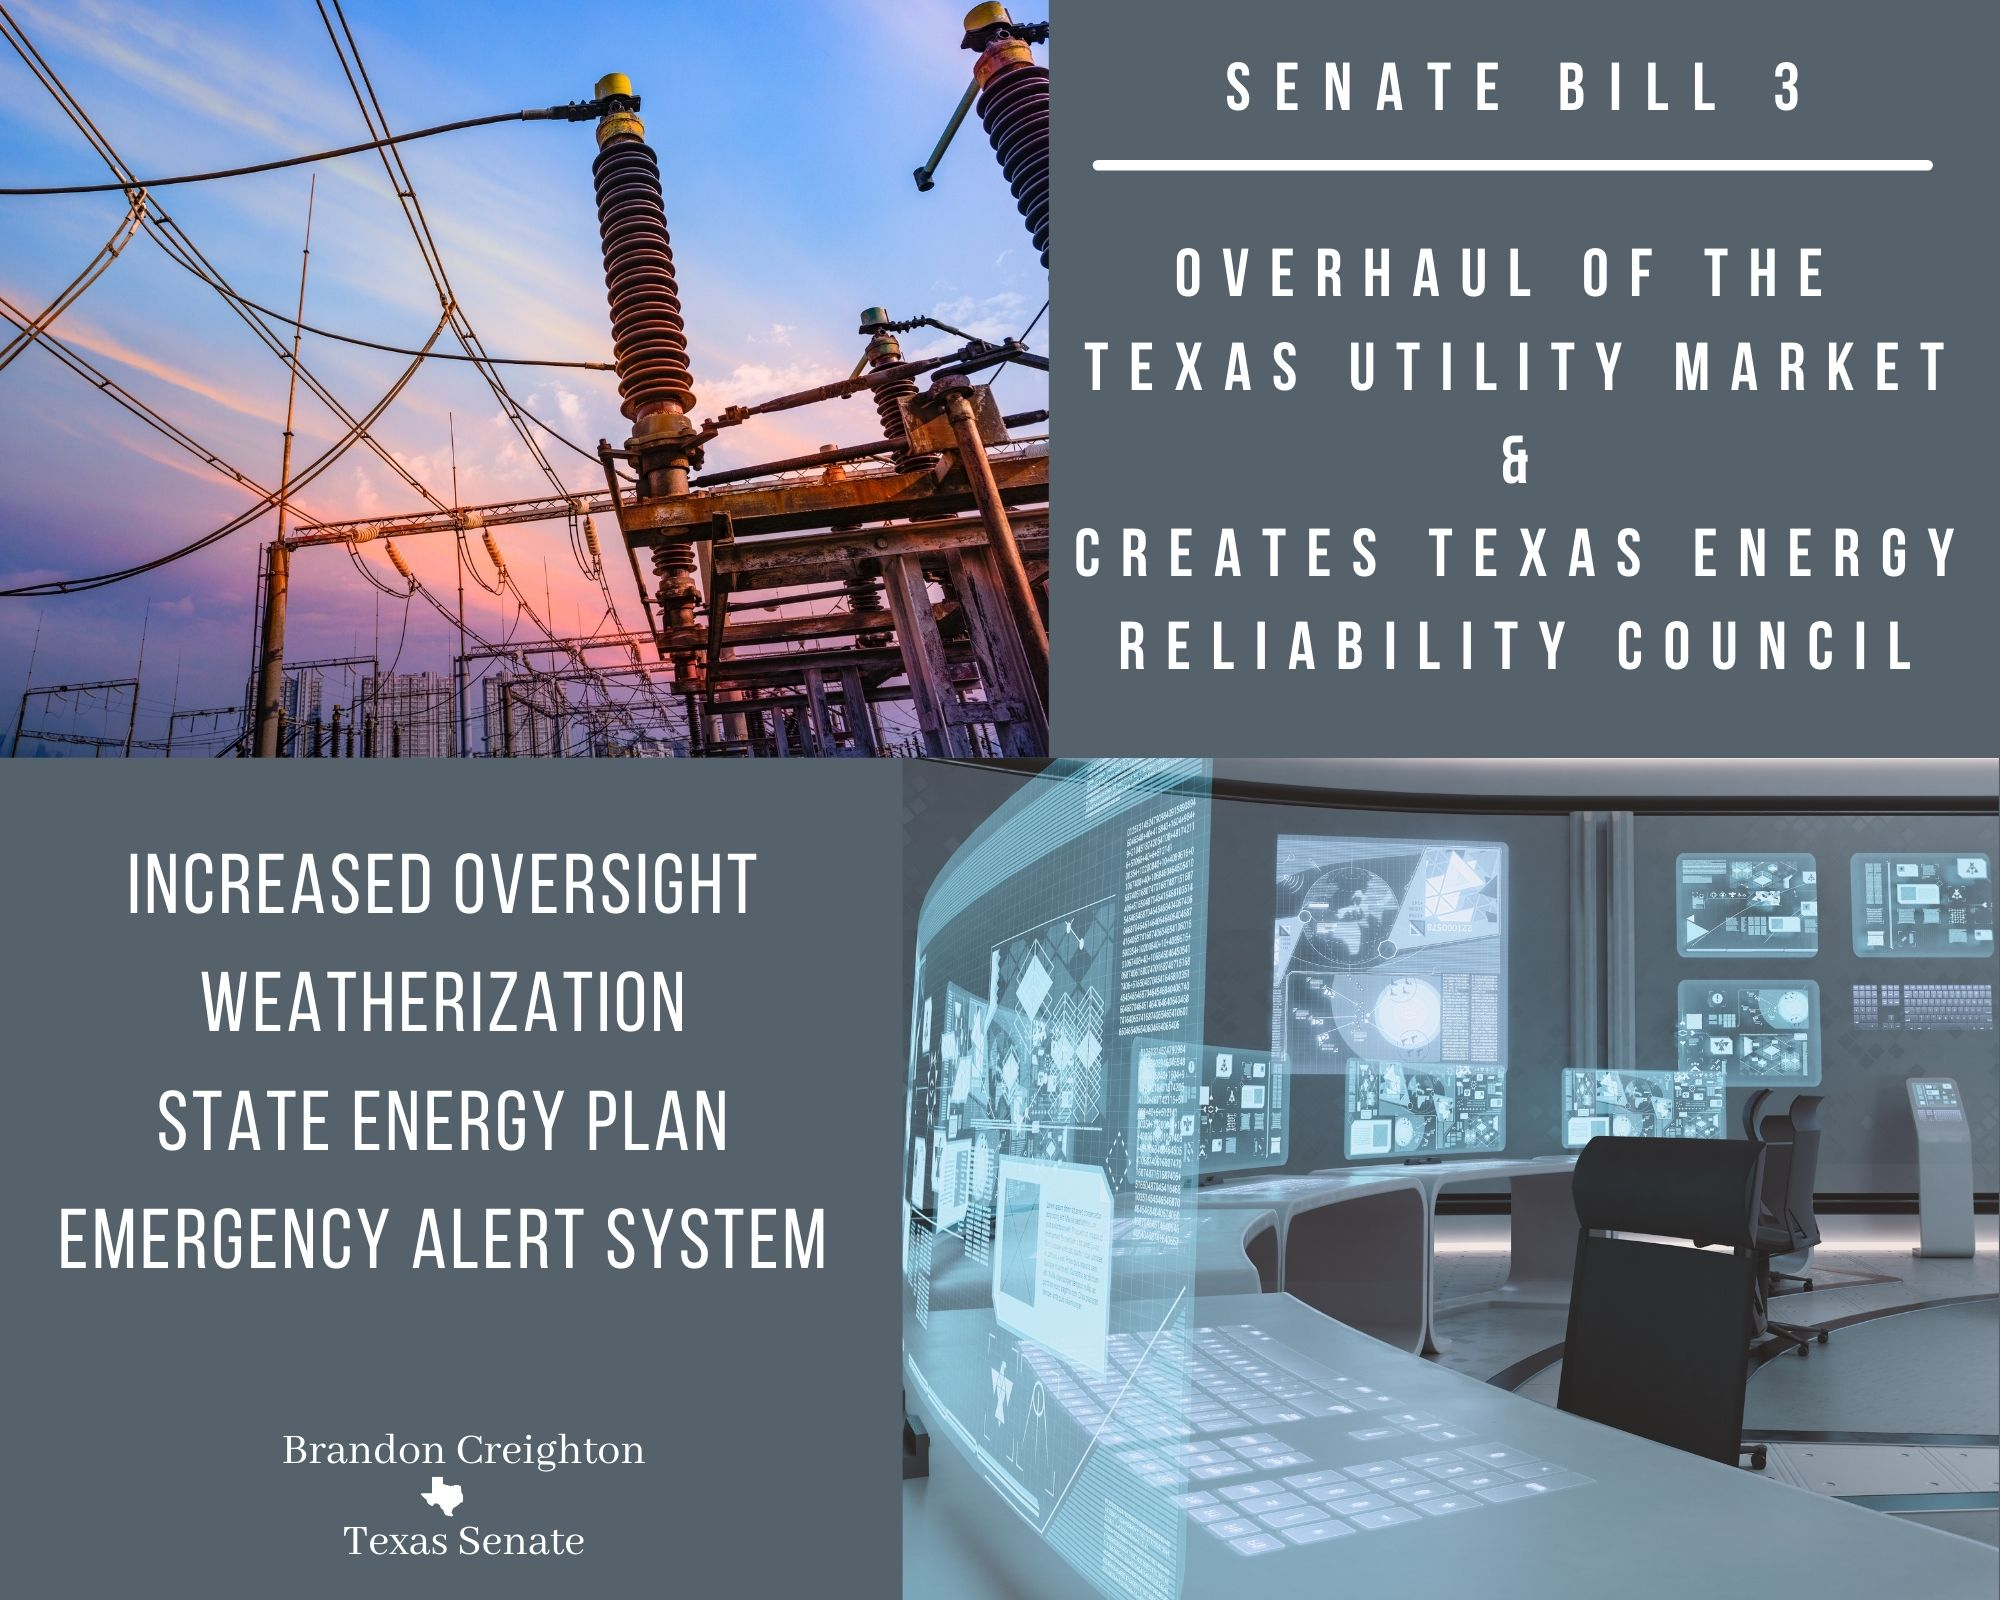 Senate Bill 3 – Overhauling and Increasing Oversight of the Texas Utility Market